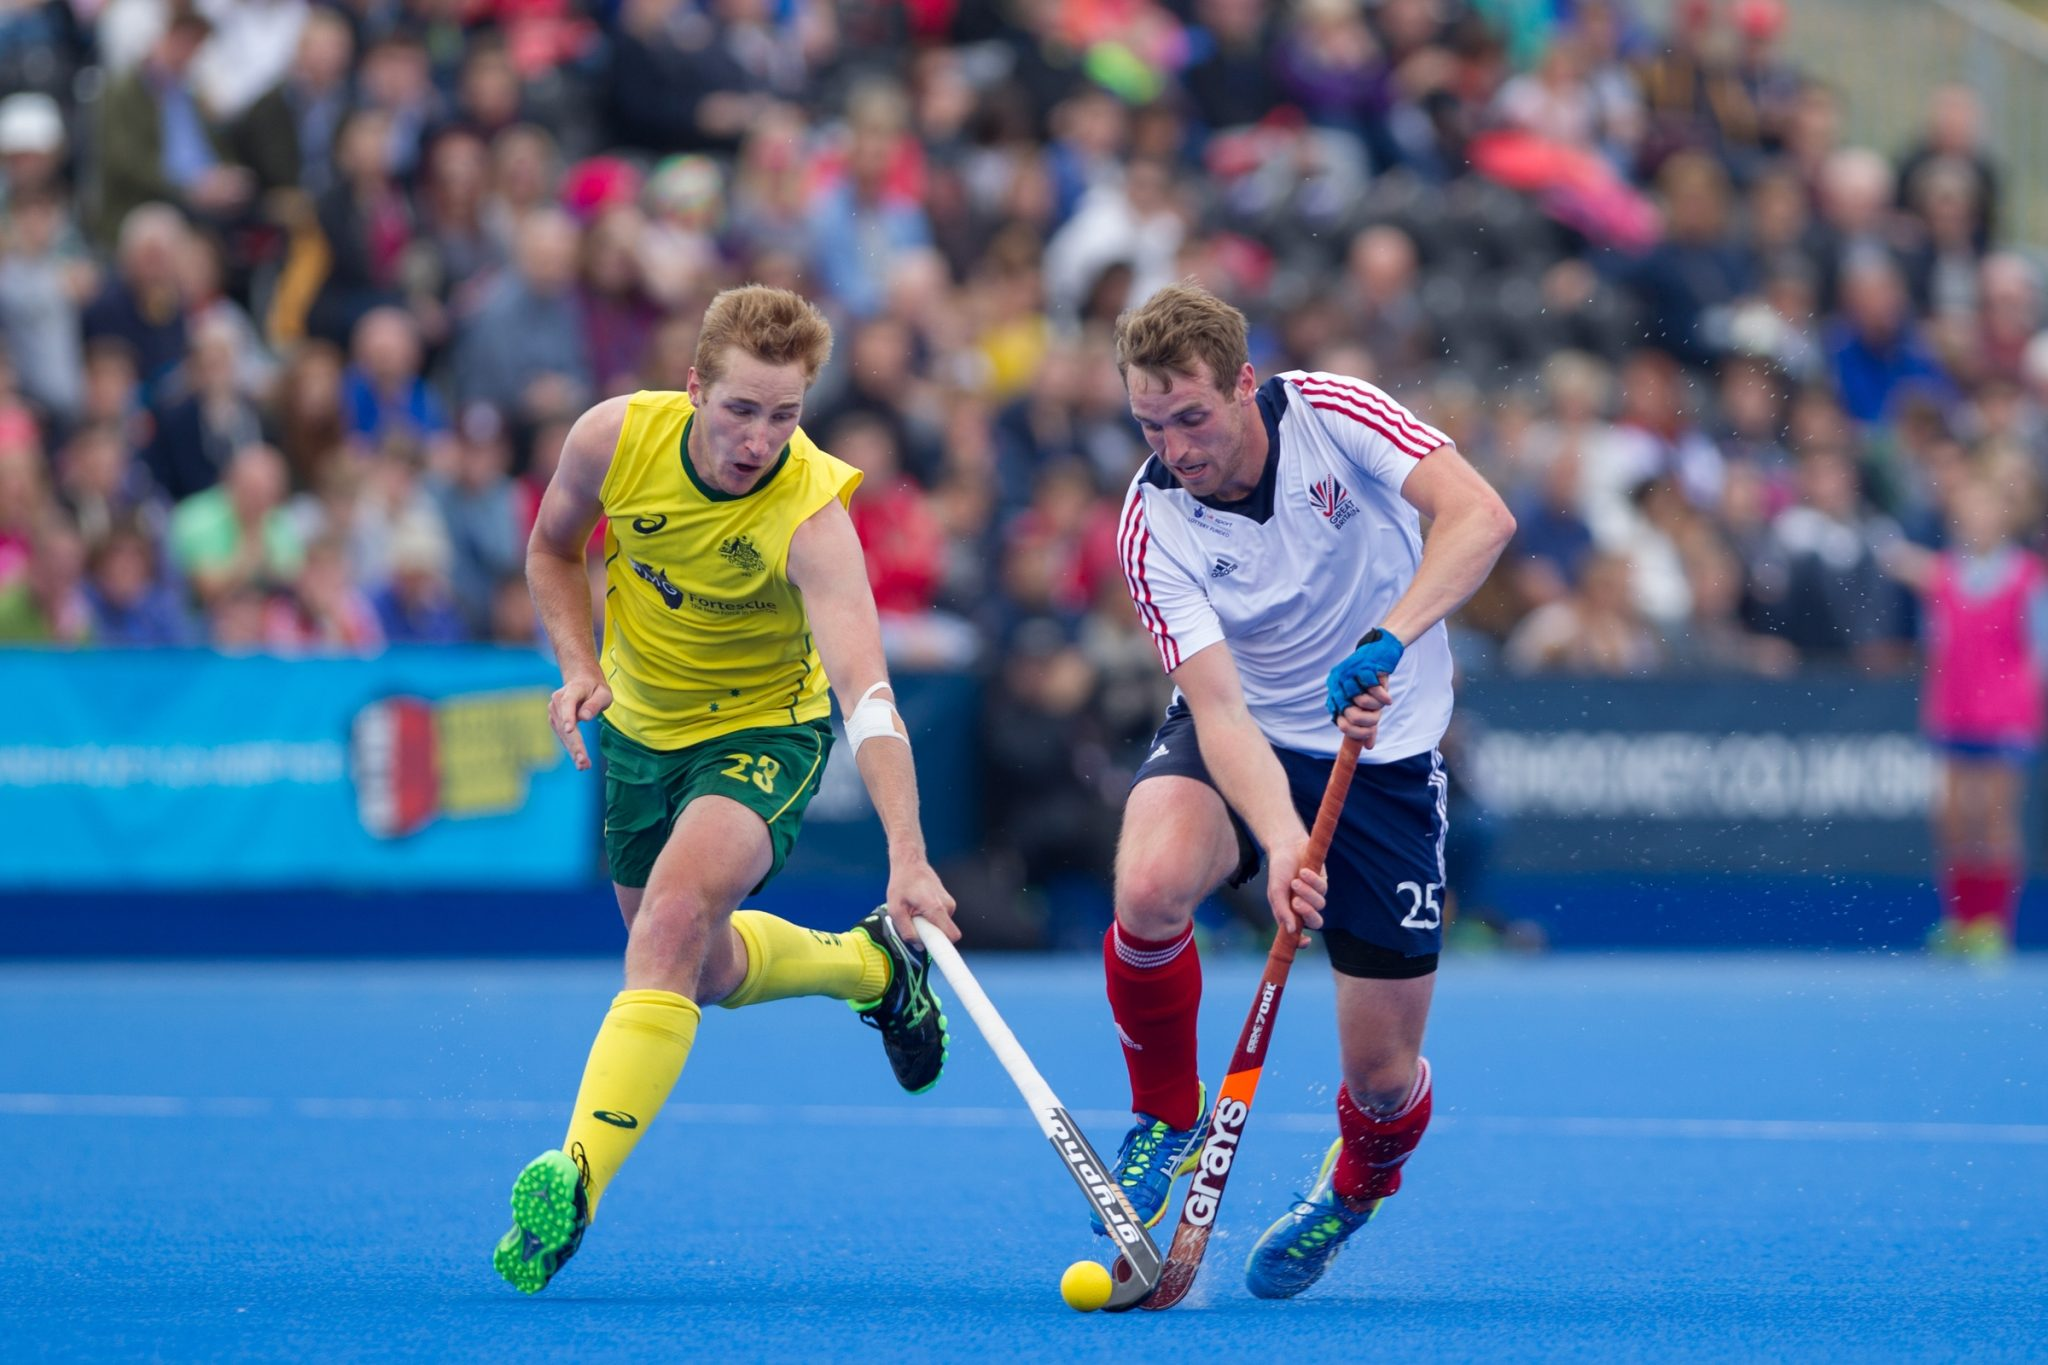 Must see Fih World Cup 2018 - Great-Britain-will-play-World-number-1-Australia-on-the-opening-night  Pic_322046 .jpg